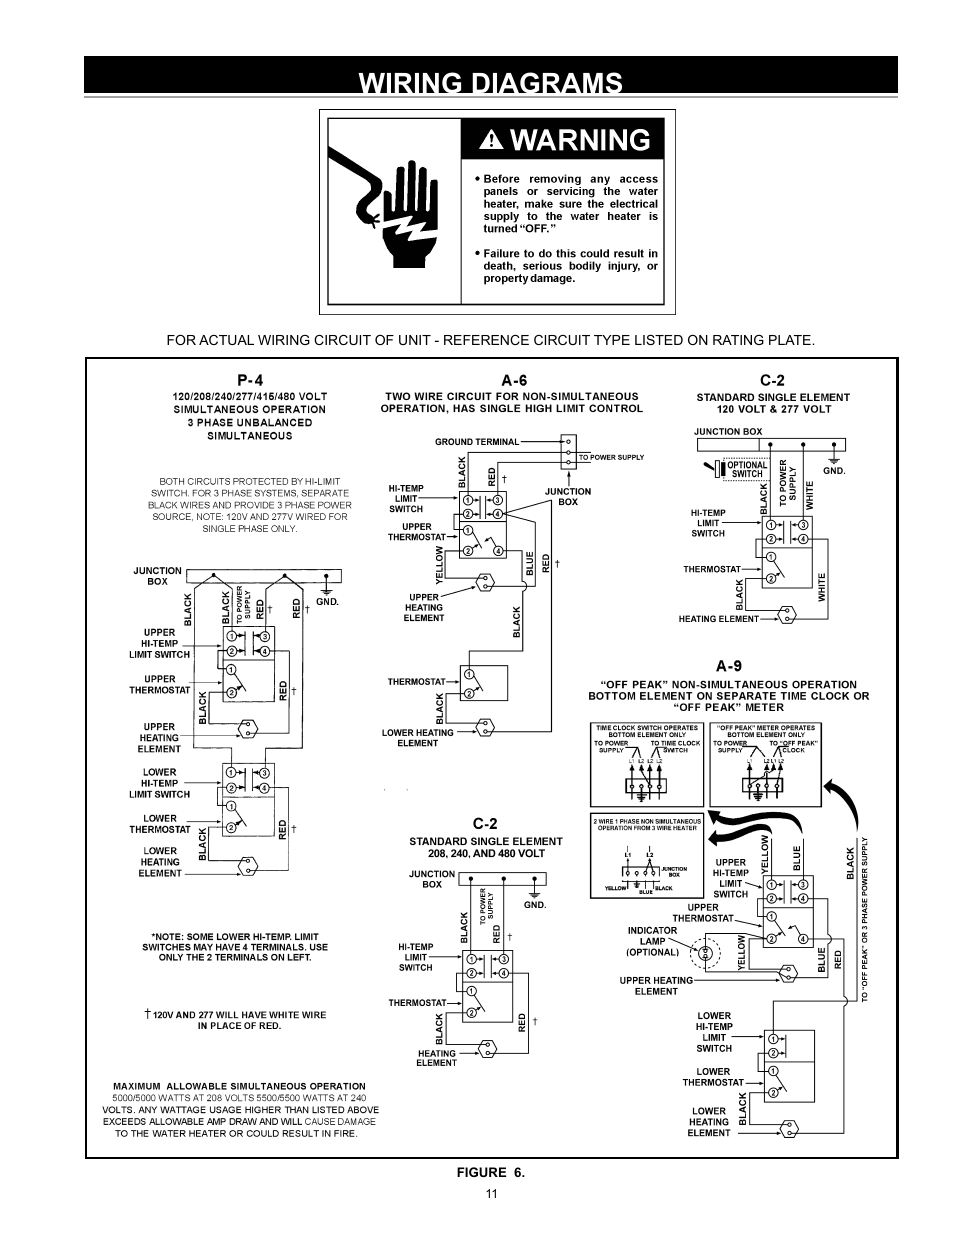 hight resolution of wiring diagrams john wood electric water heaters new user manual page 11 28